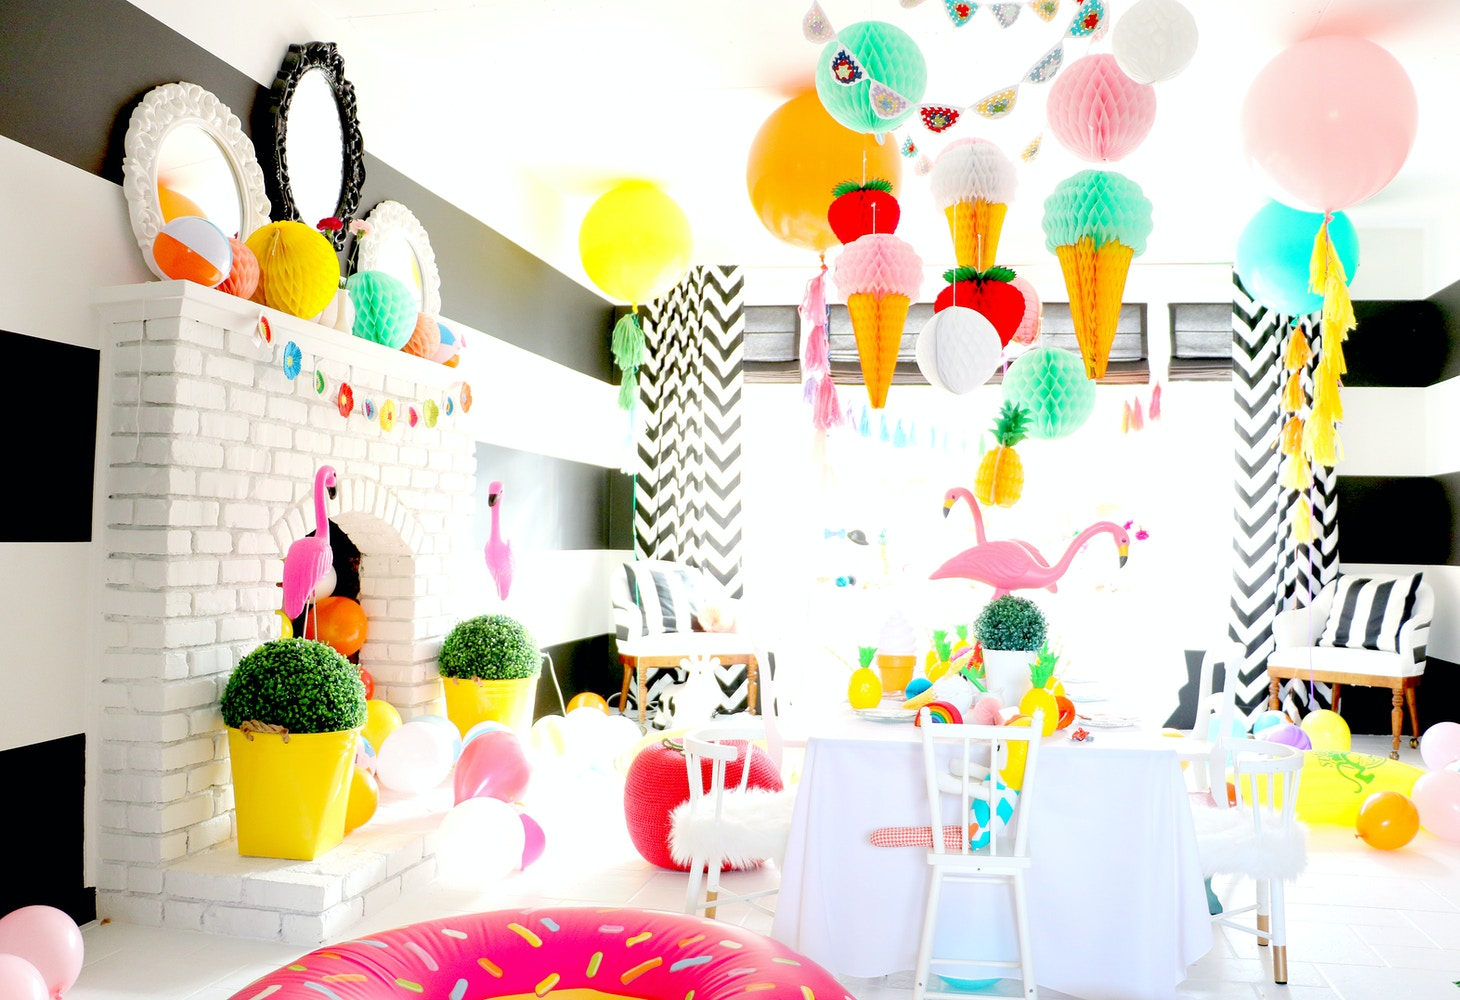 COLOUR SPLASH BIRTHDAY PARTY